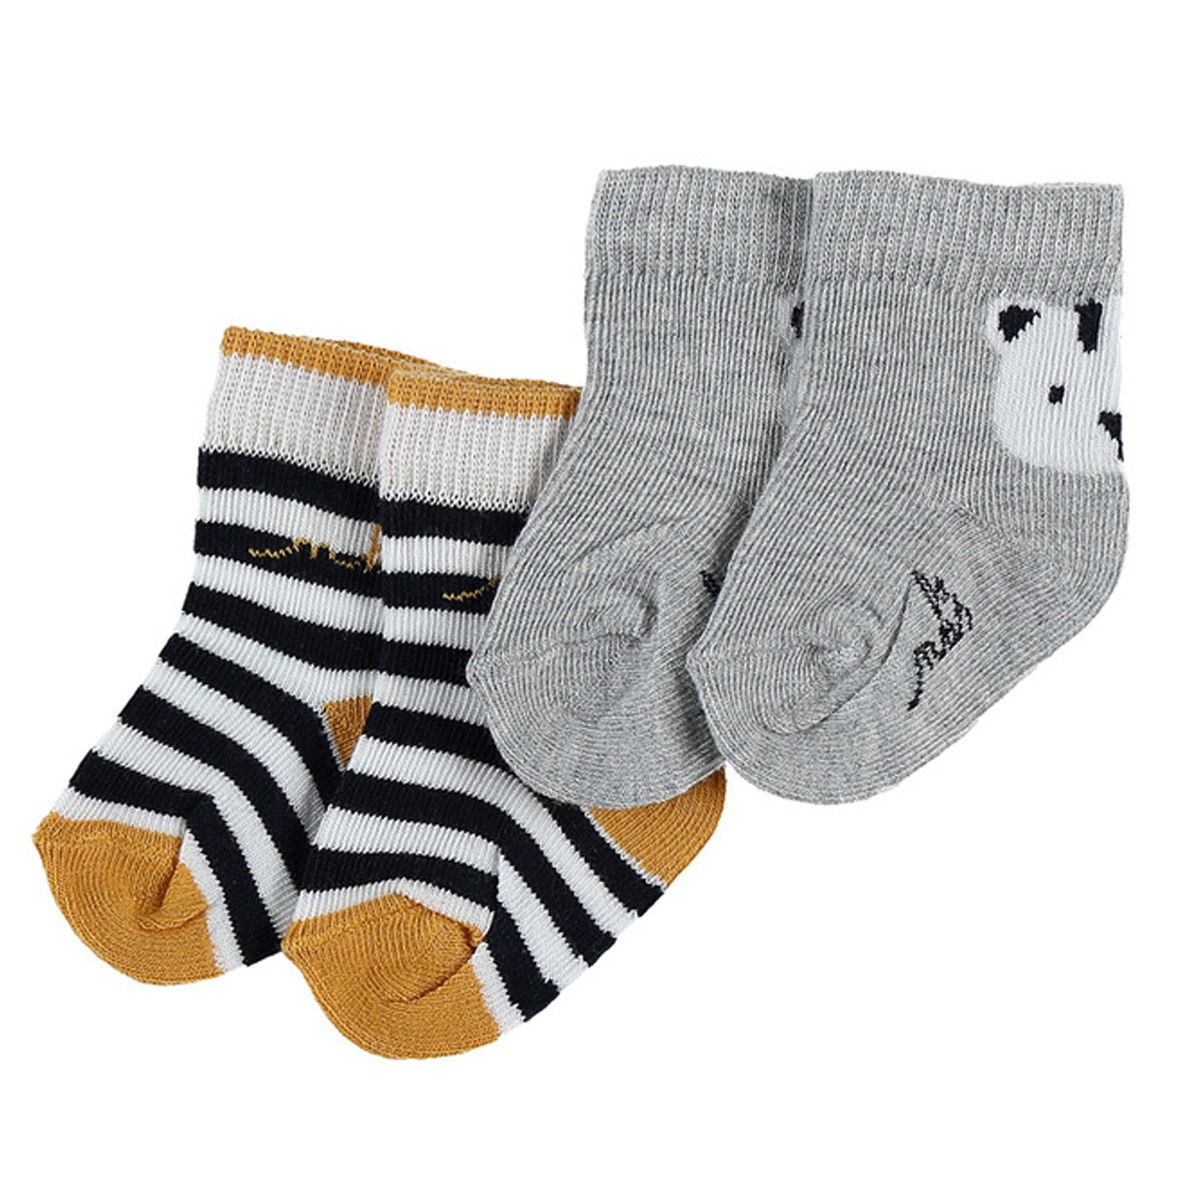 Set of 2 pairs of socks - Striped & grey